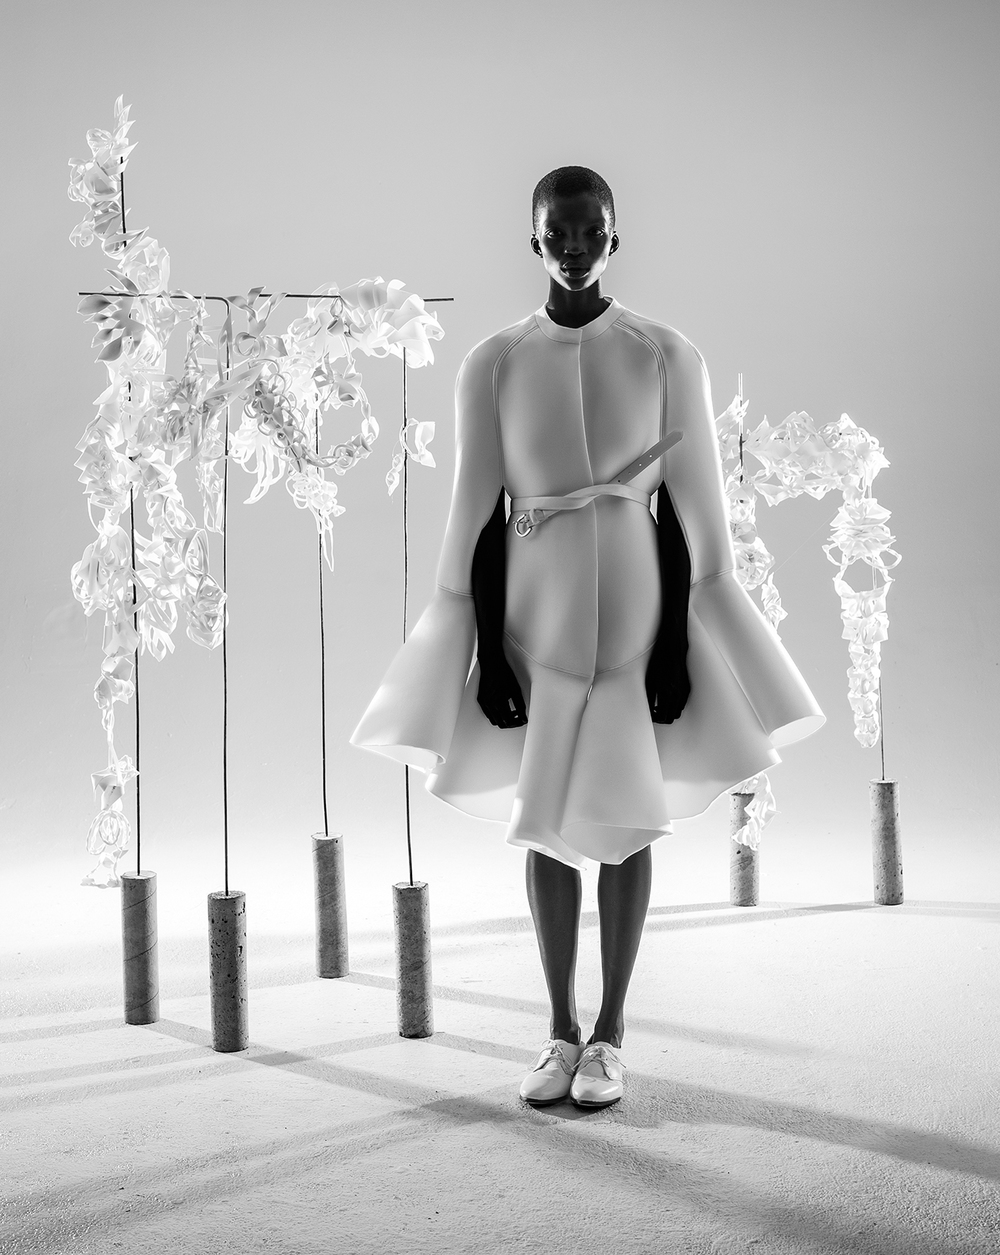 Cape by Nika Tang, MFA Fashion Design. Belt and shoes stylist's own. Prosthetic models from the School of Architecture.